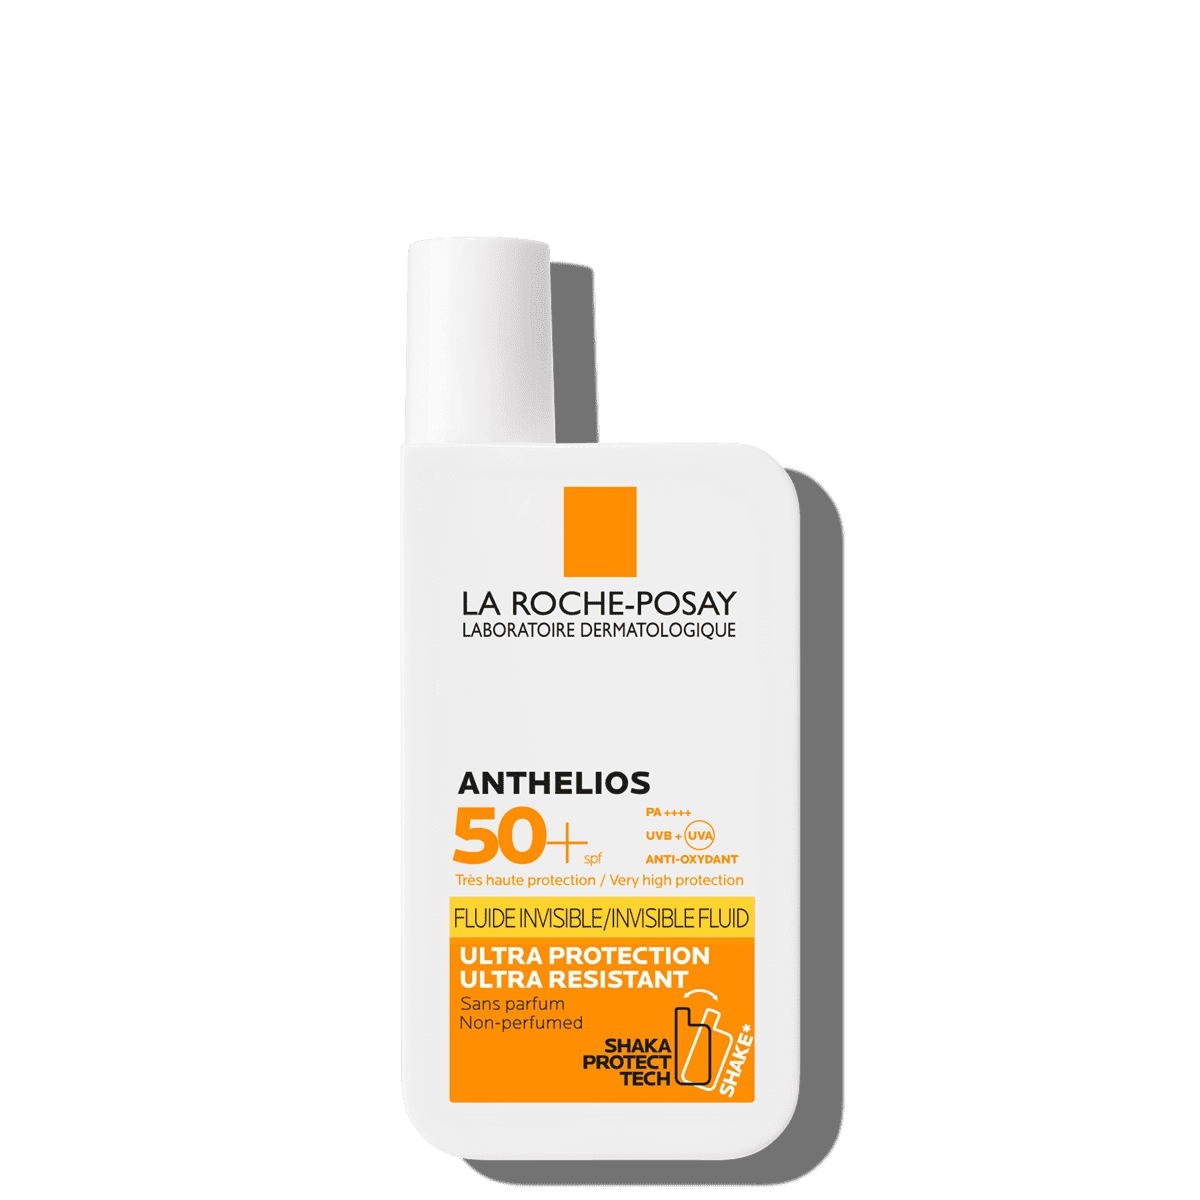 LaRochePosay-Product-Sun-Anthelios-InvisibleFluidSpf50-50ml--without-perfume-30162662-FWS